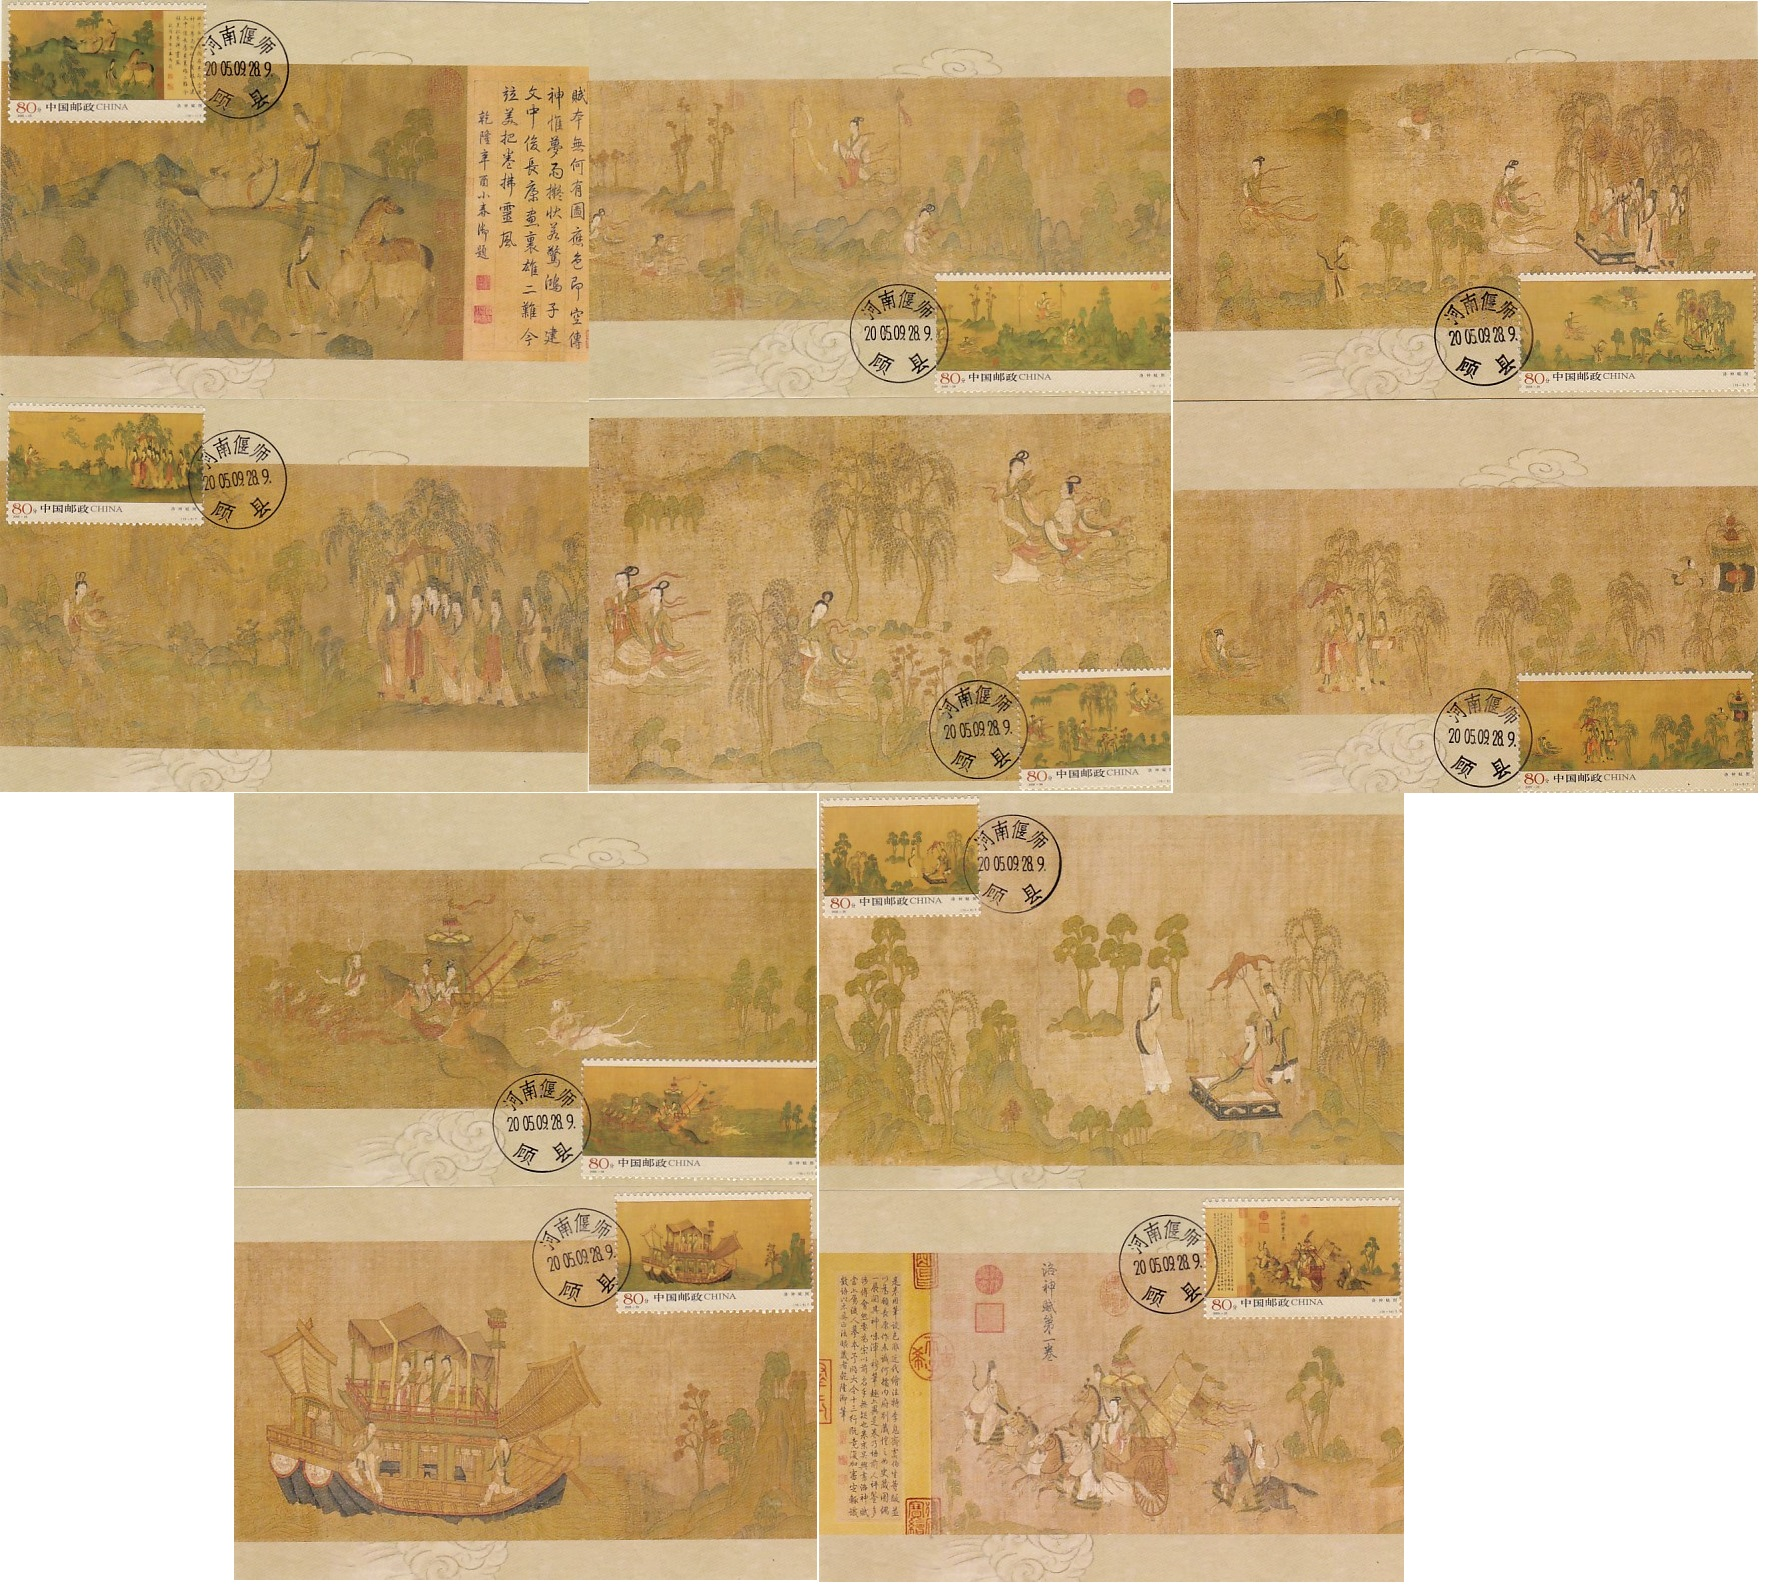 2005-25 Ancient Paintings Lo Shenfu Map Extreme Film 10 All-Henan Gu County In-Place Day Stamp